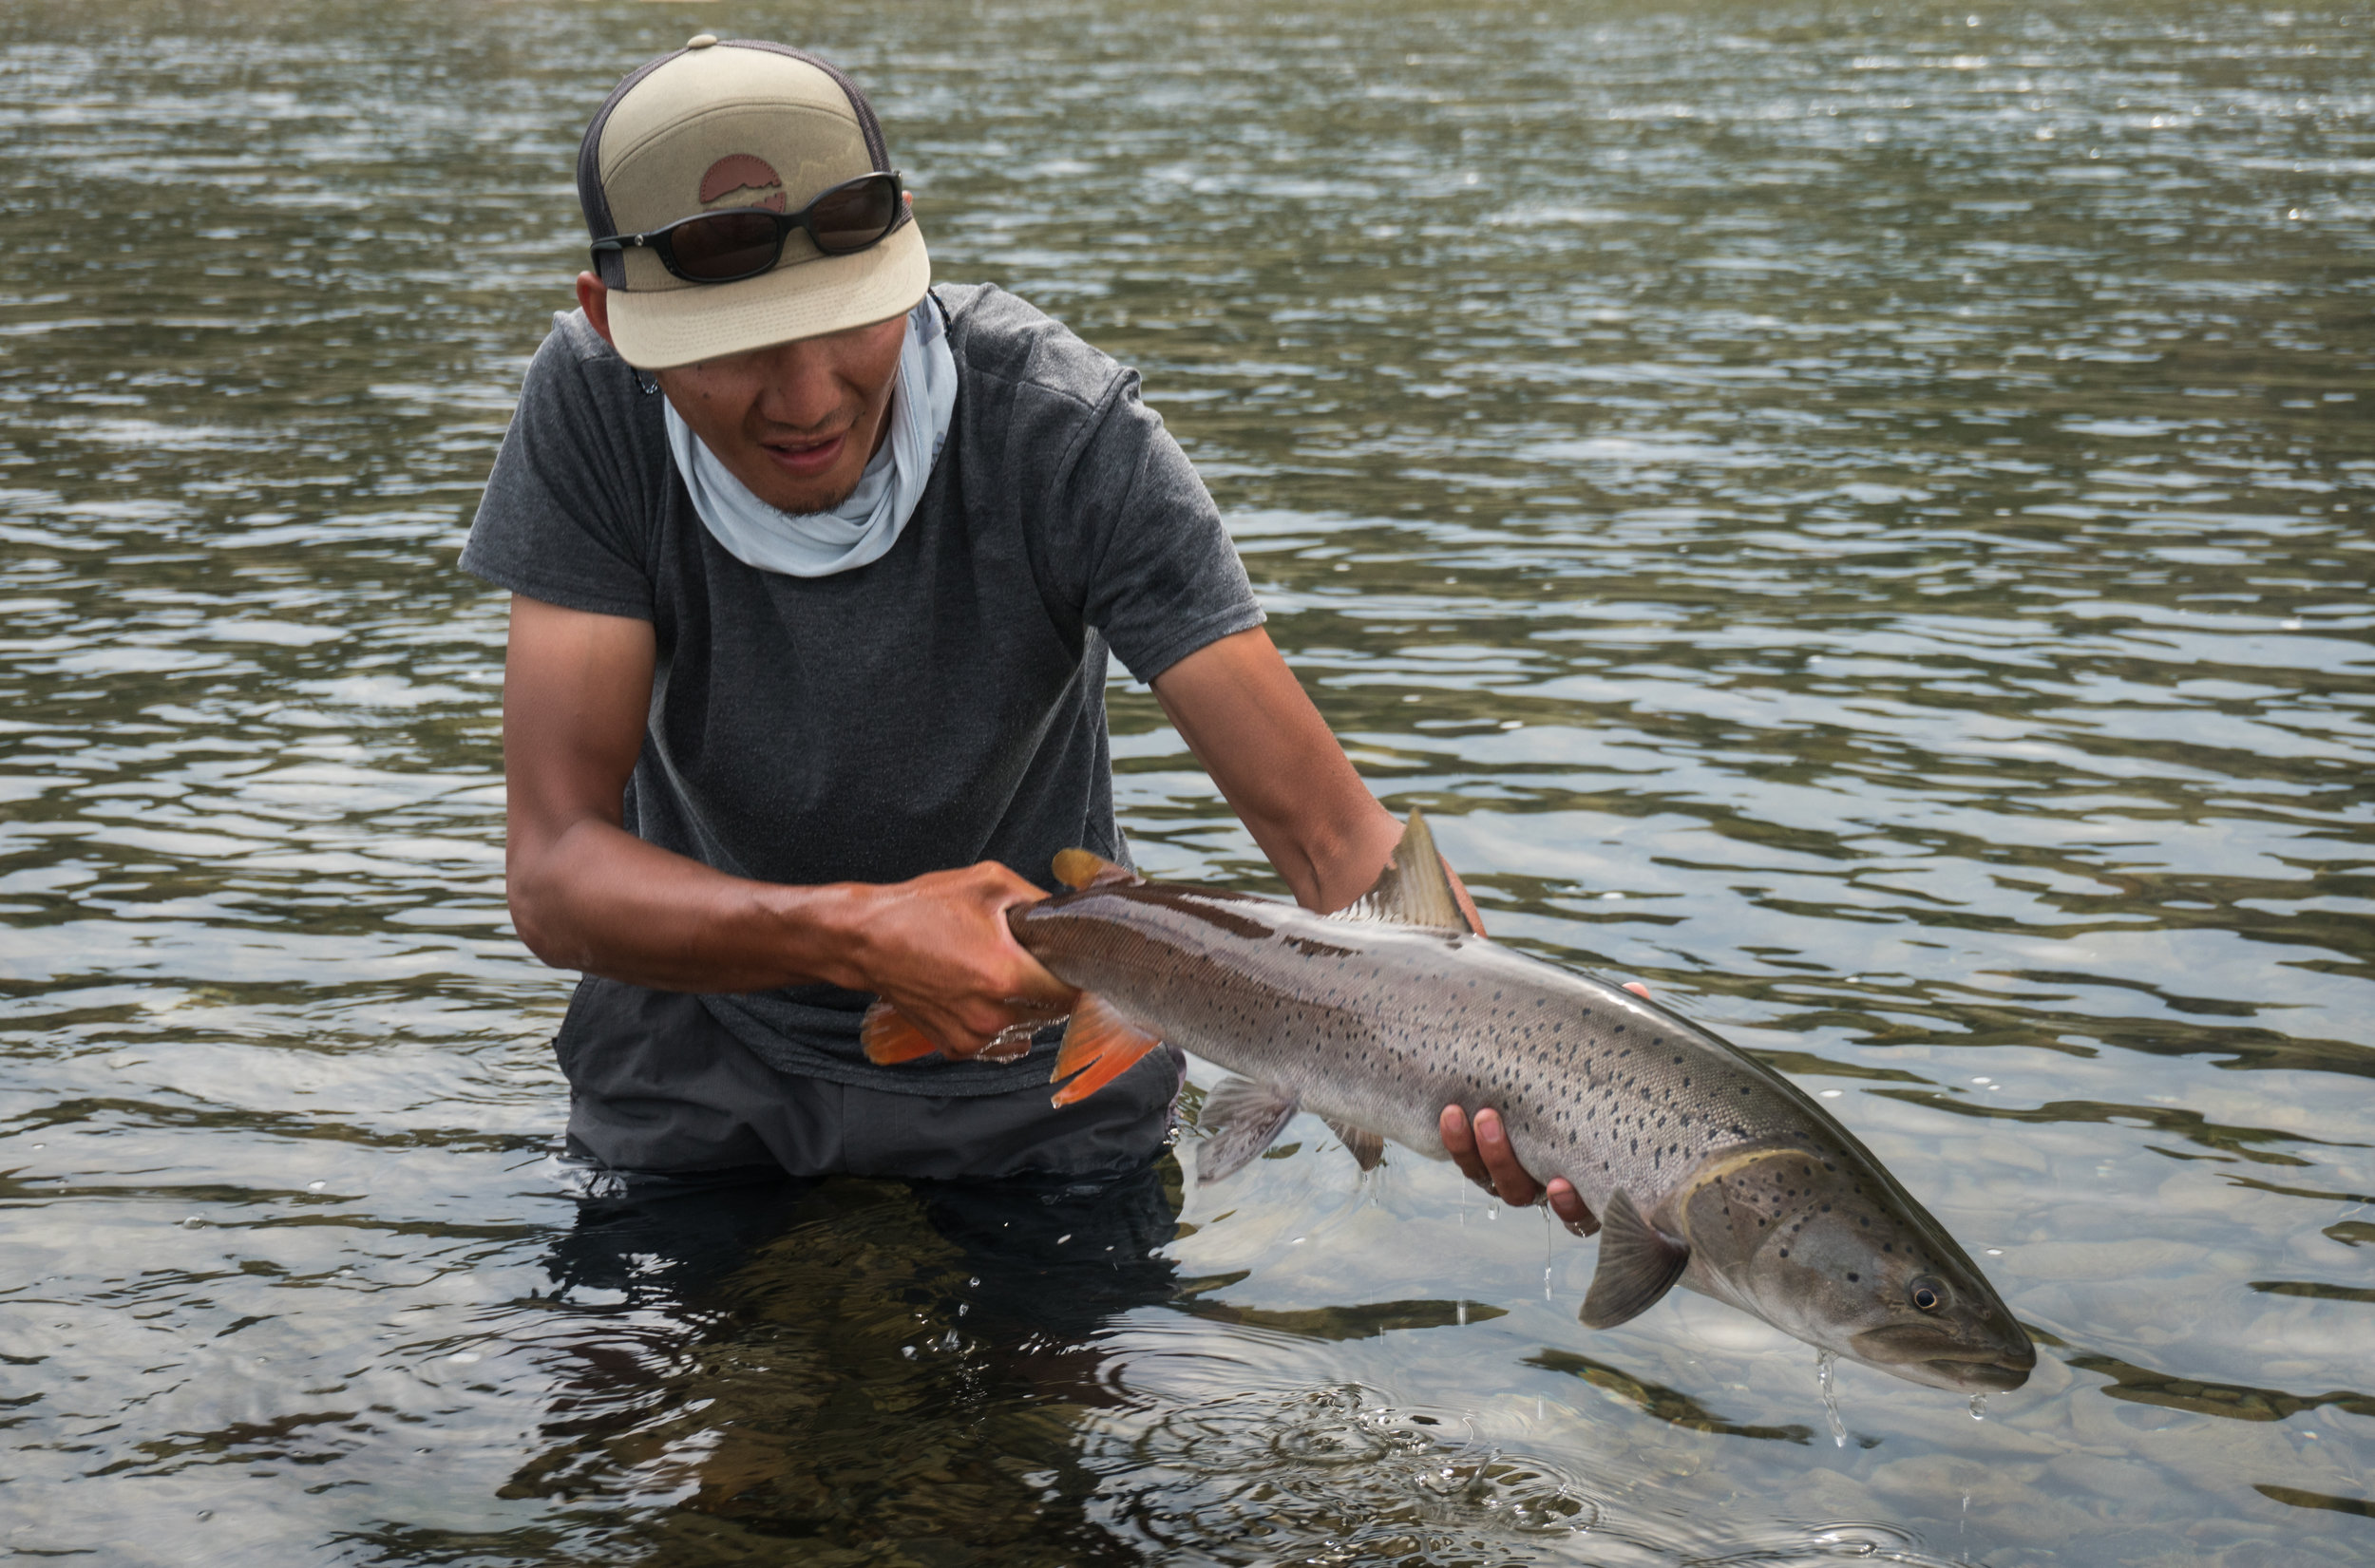 Mongolian fly fishing guide Zolboo with a taimen